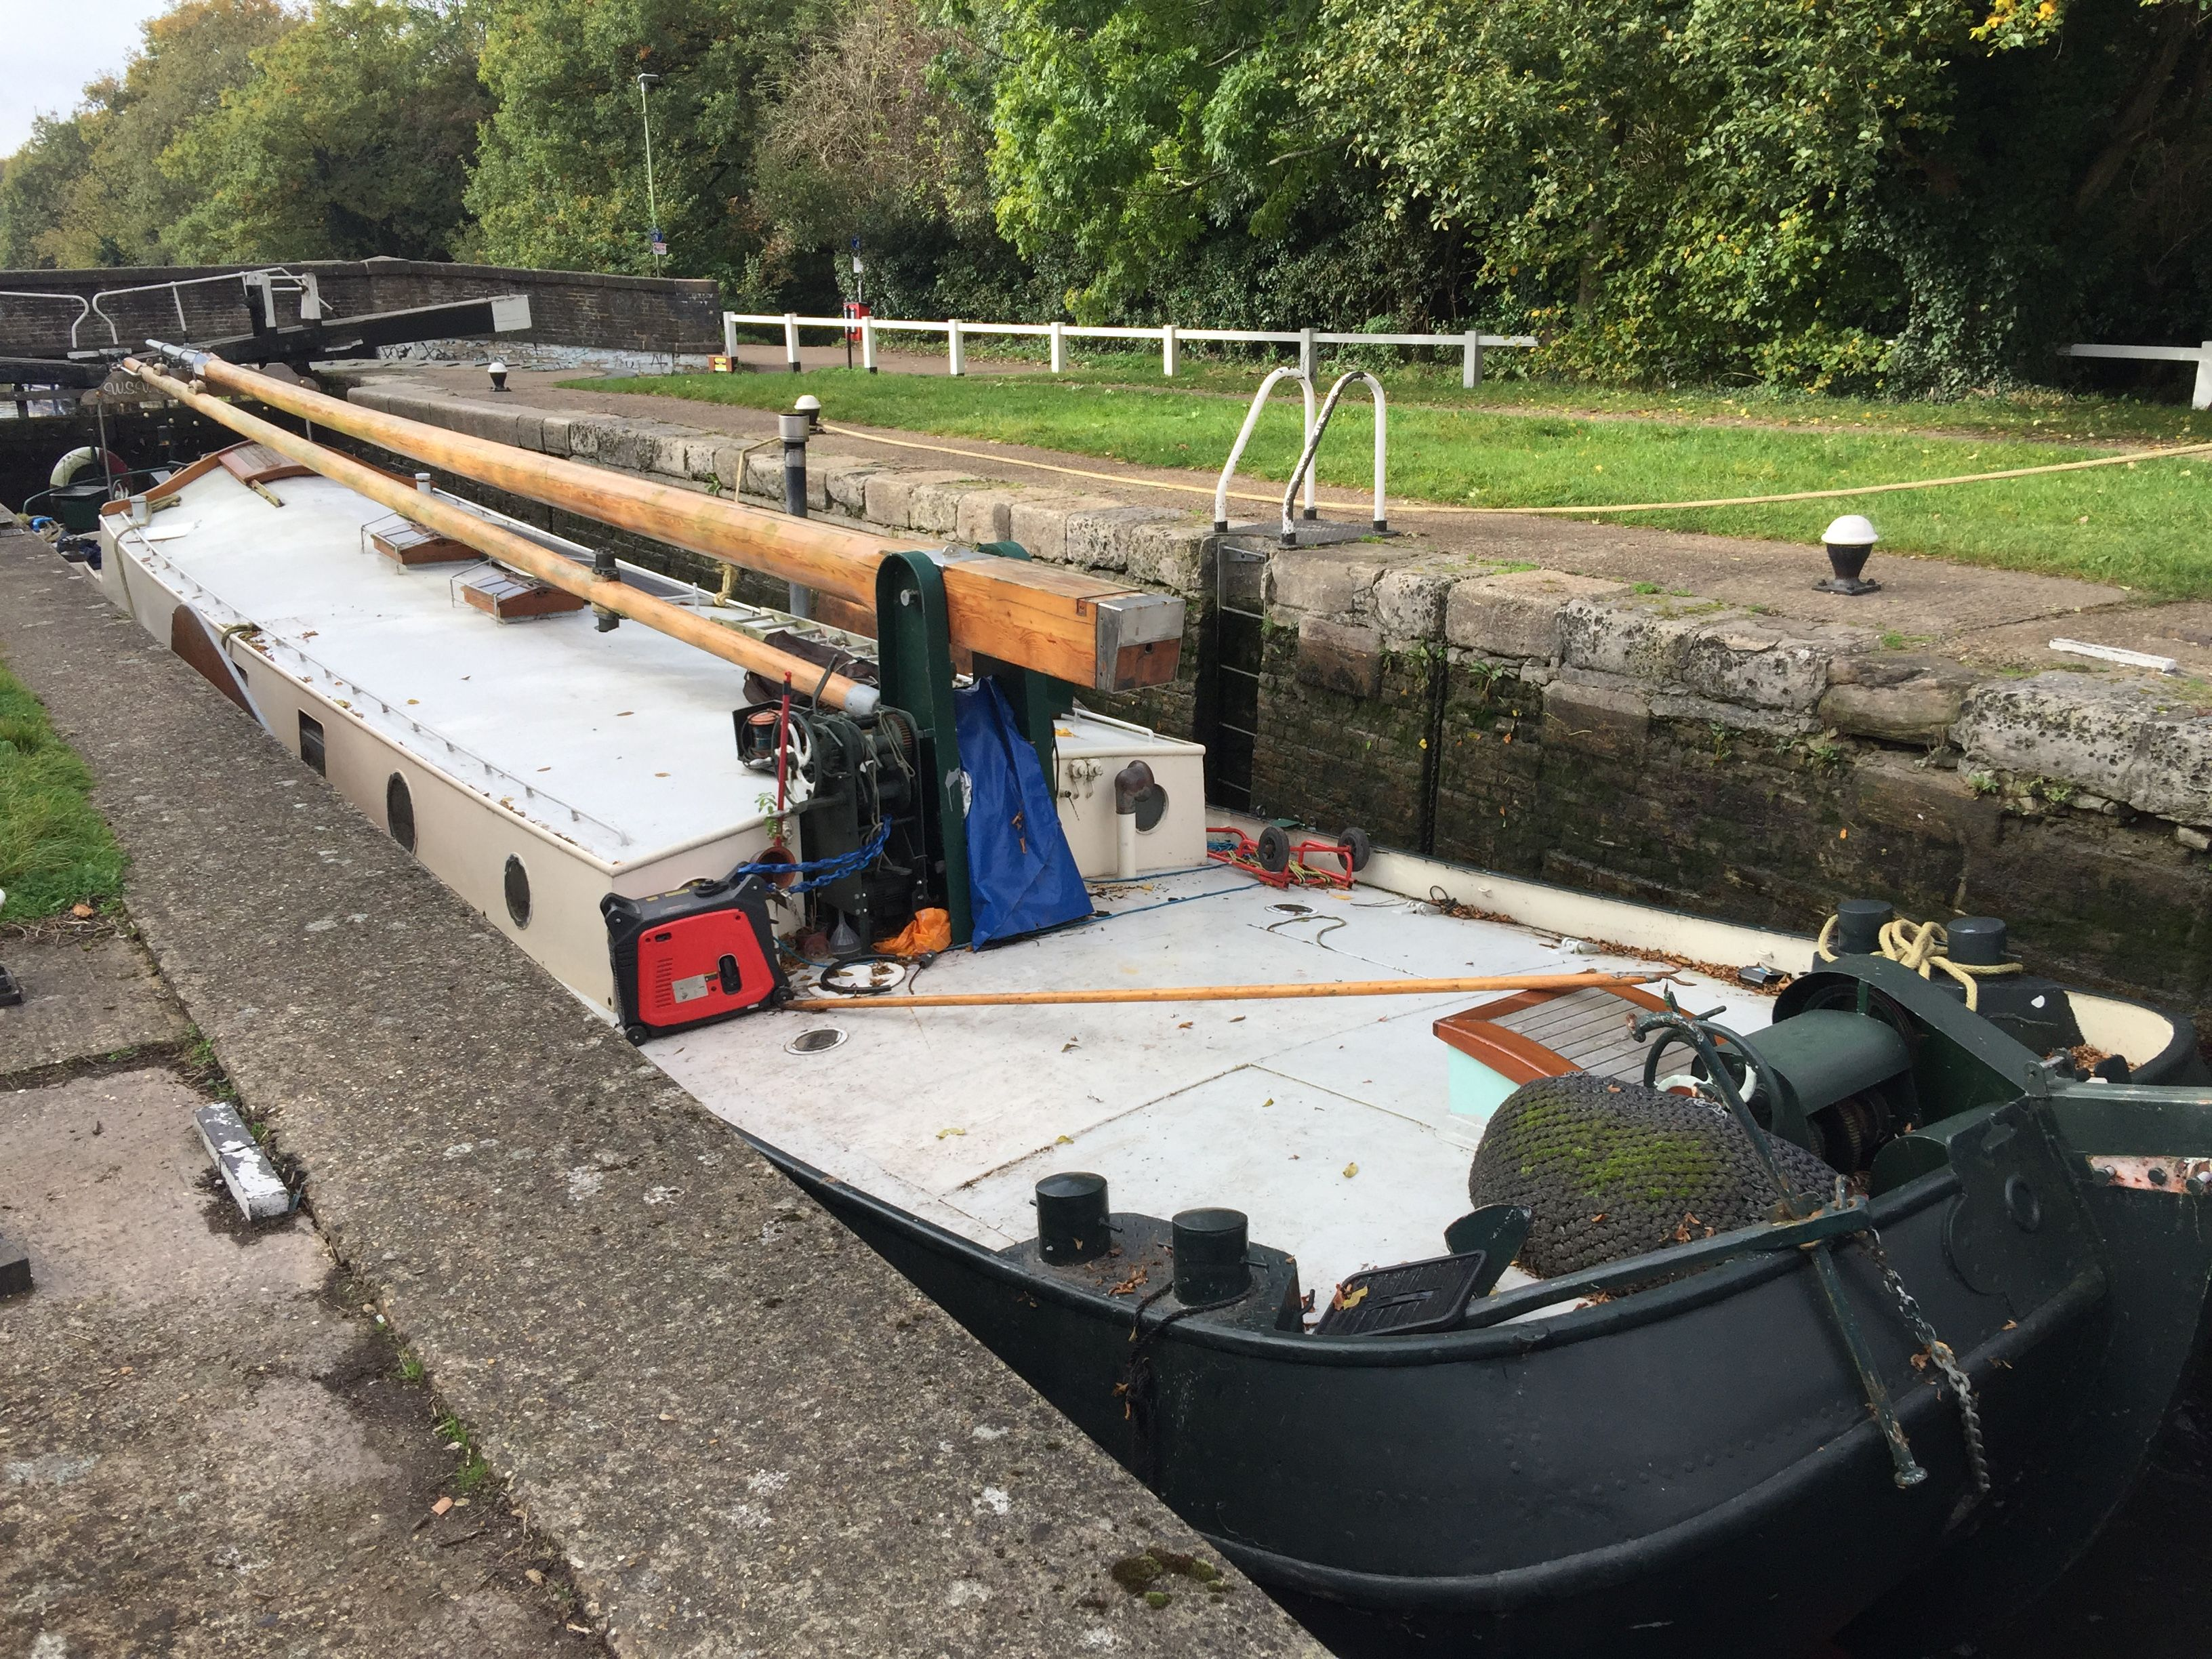 1926 Dutch barge. Cruising the grand union canal